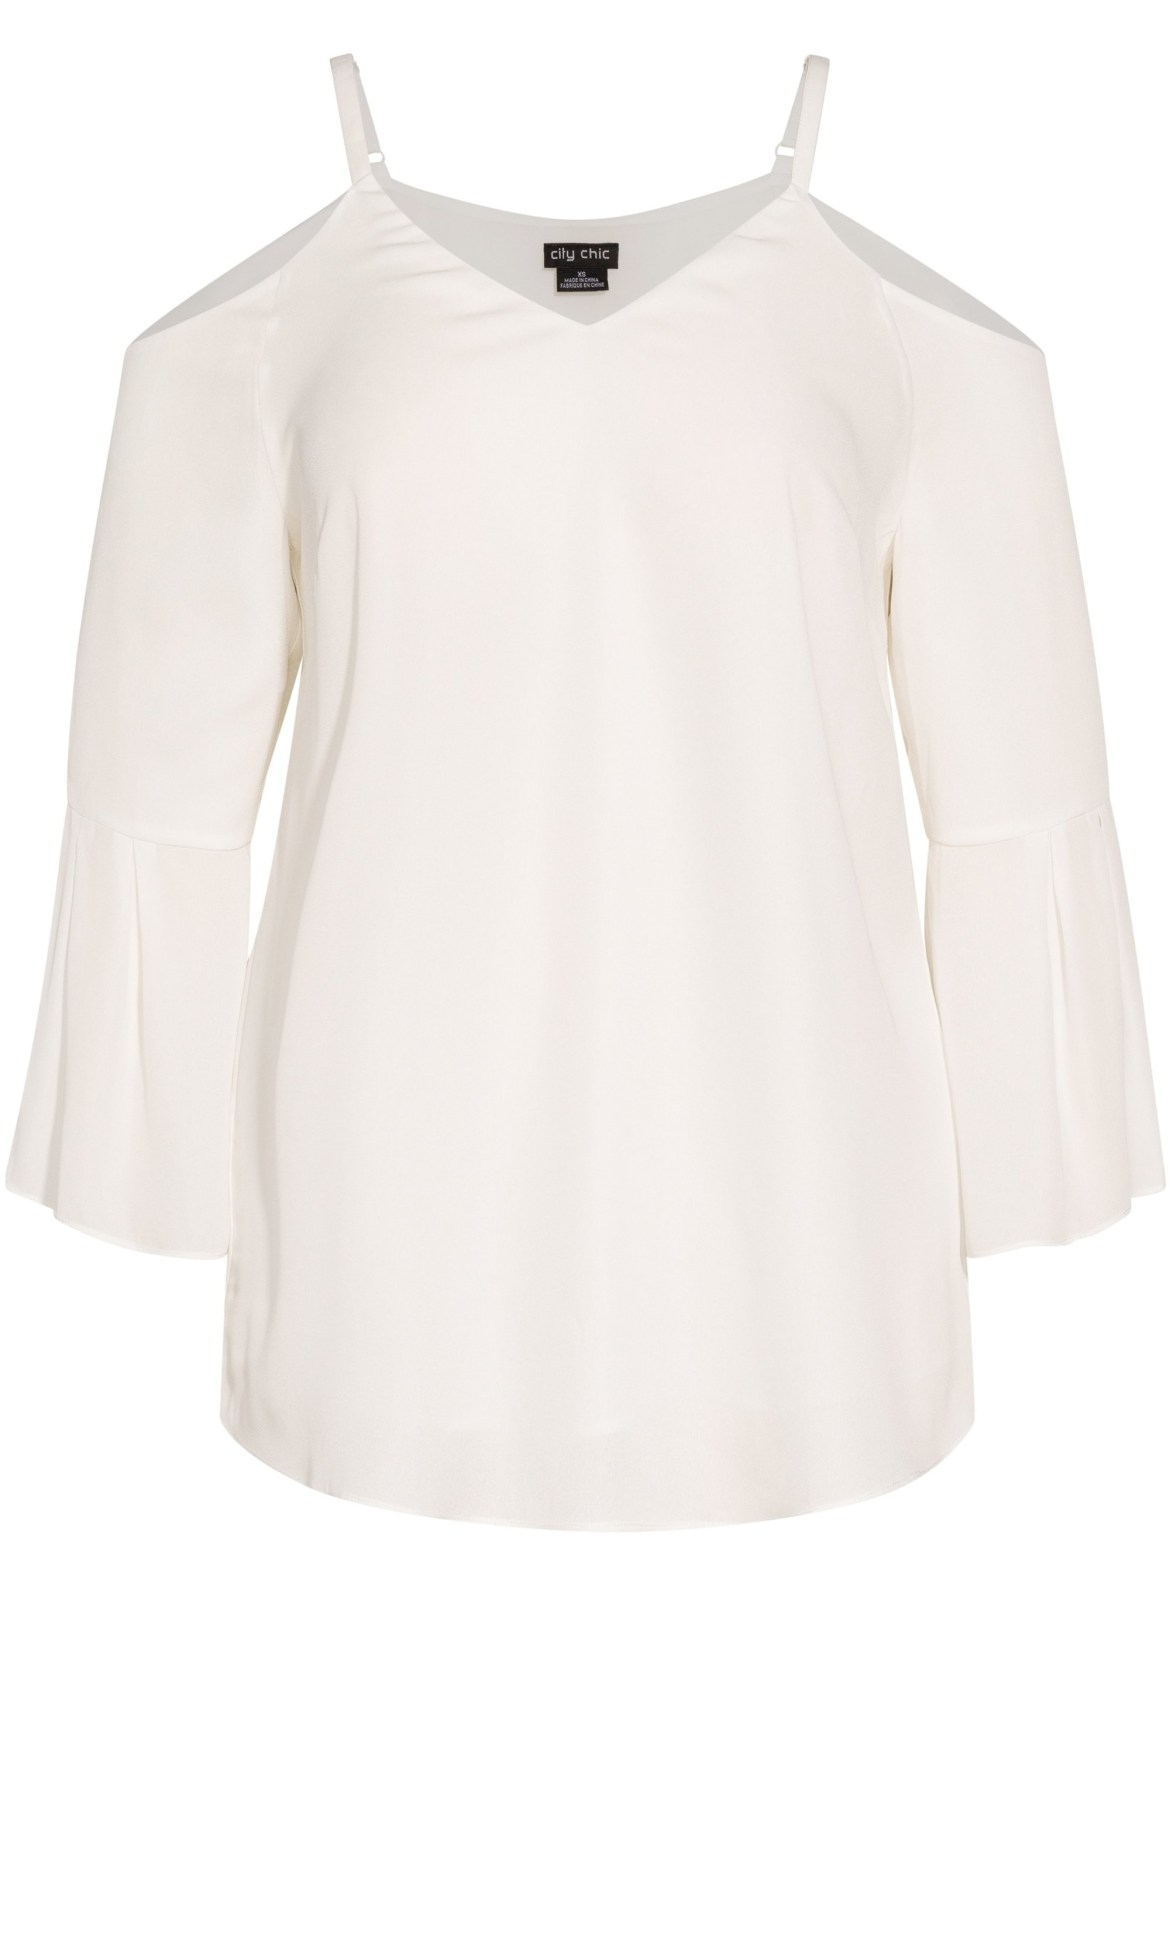 Simple Bell Top - cream 6